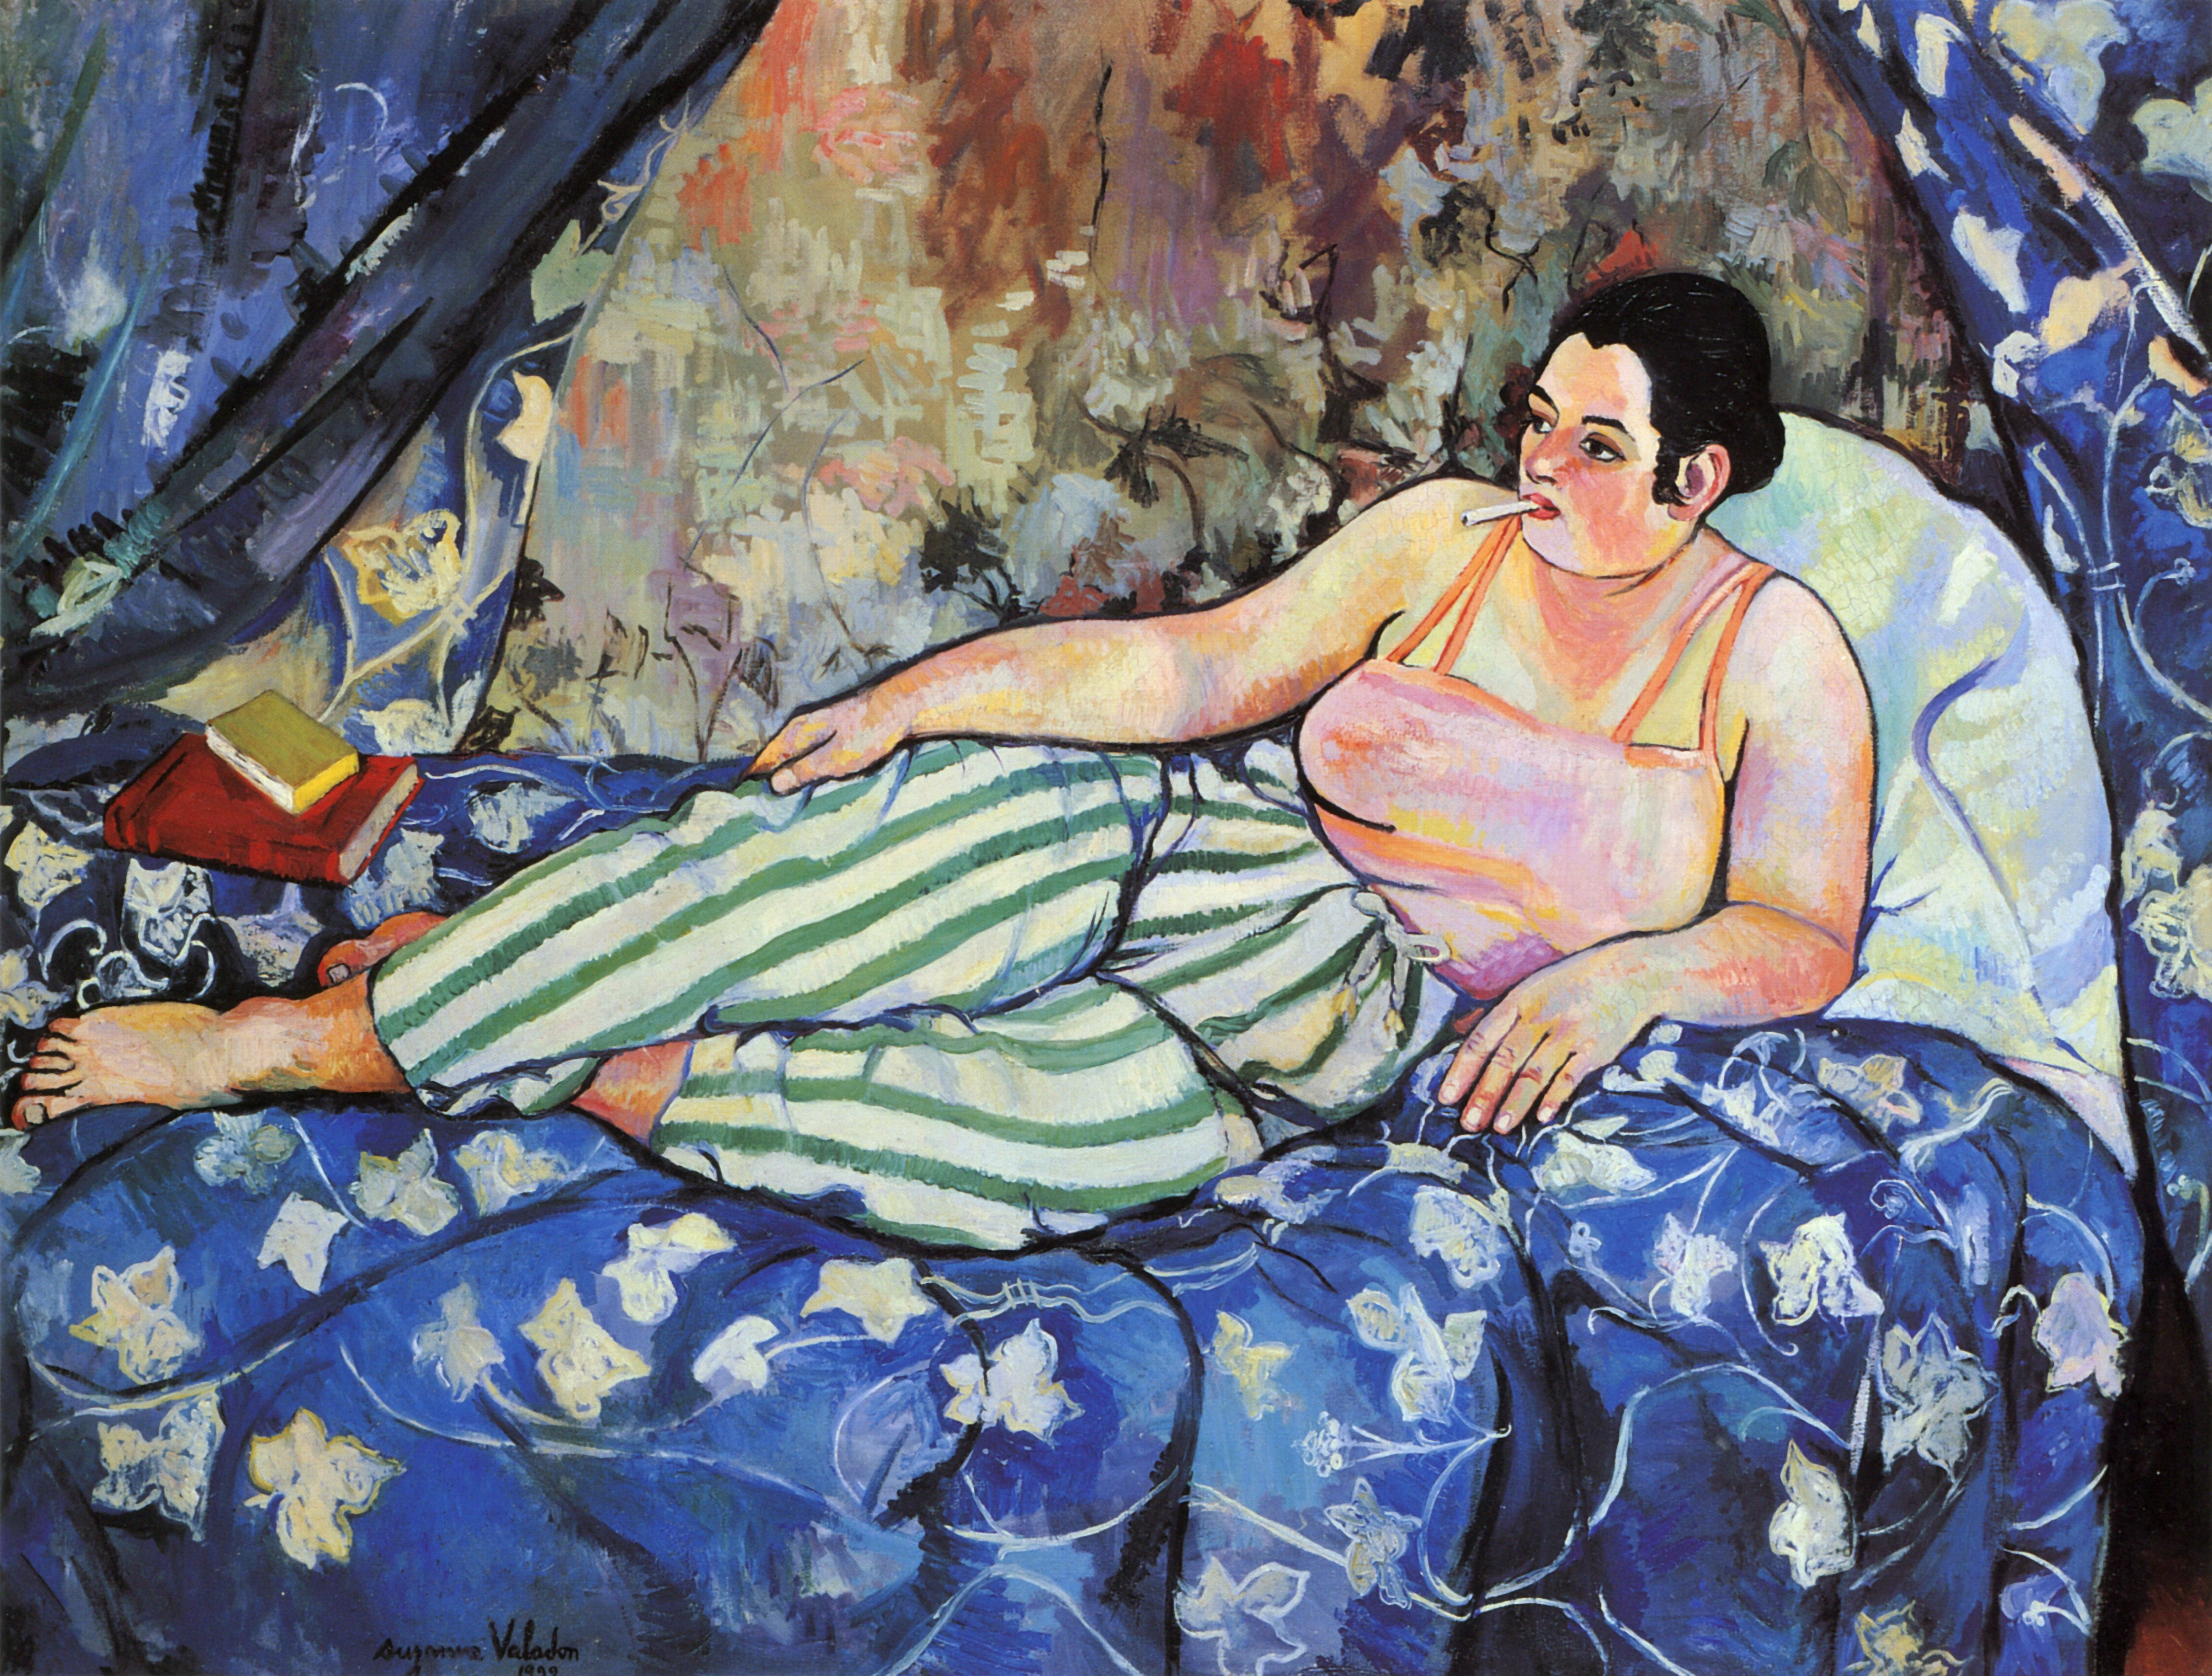 The Blue Room - Suzanne Valadon.